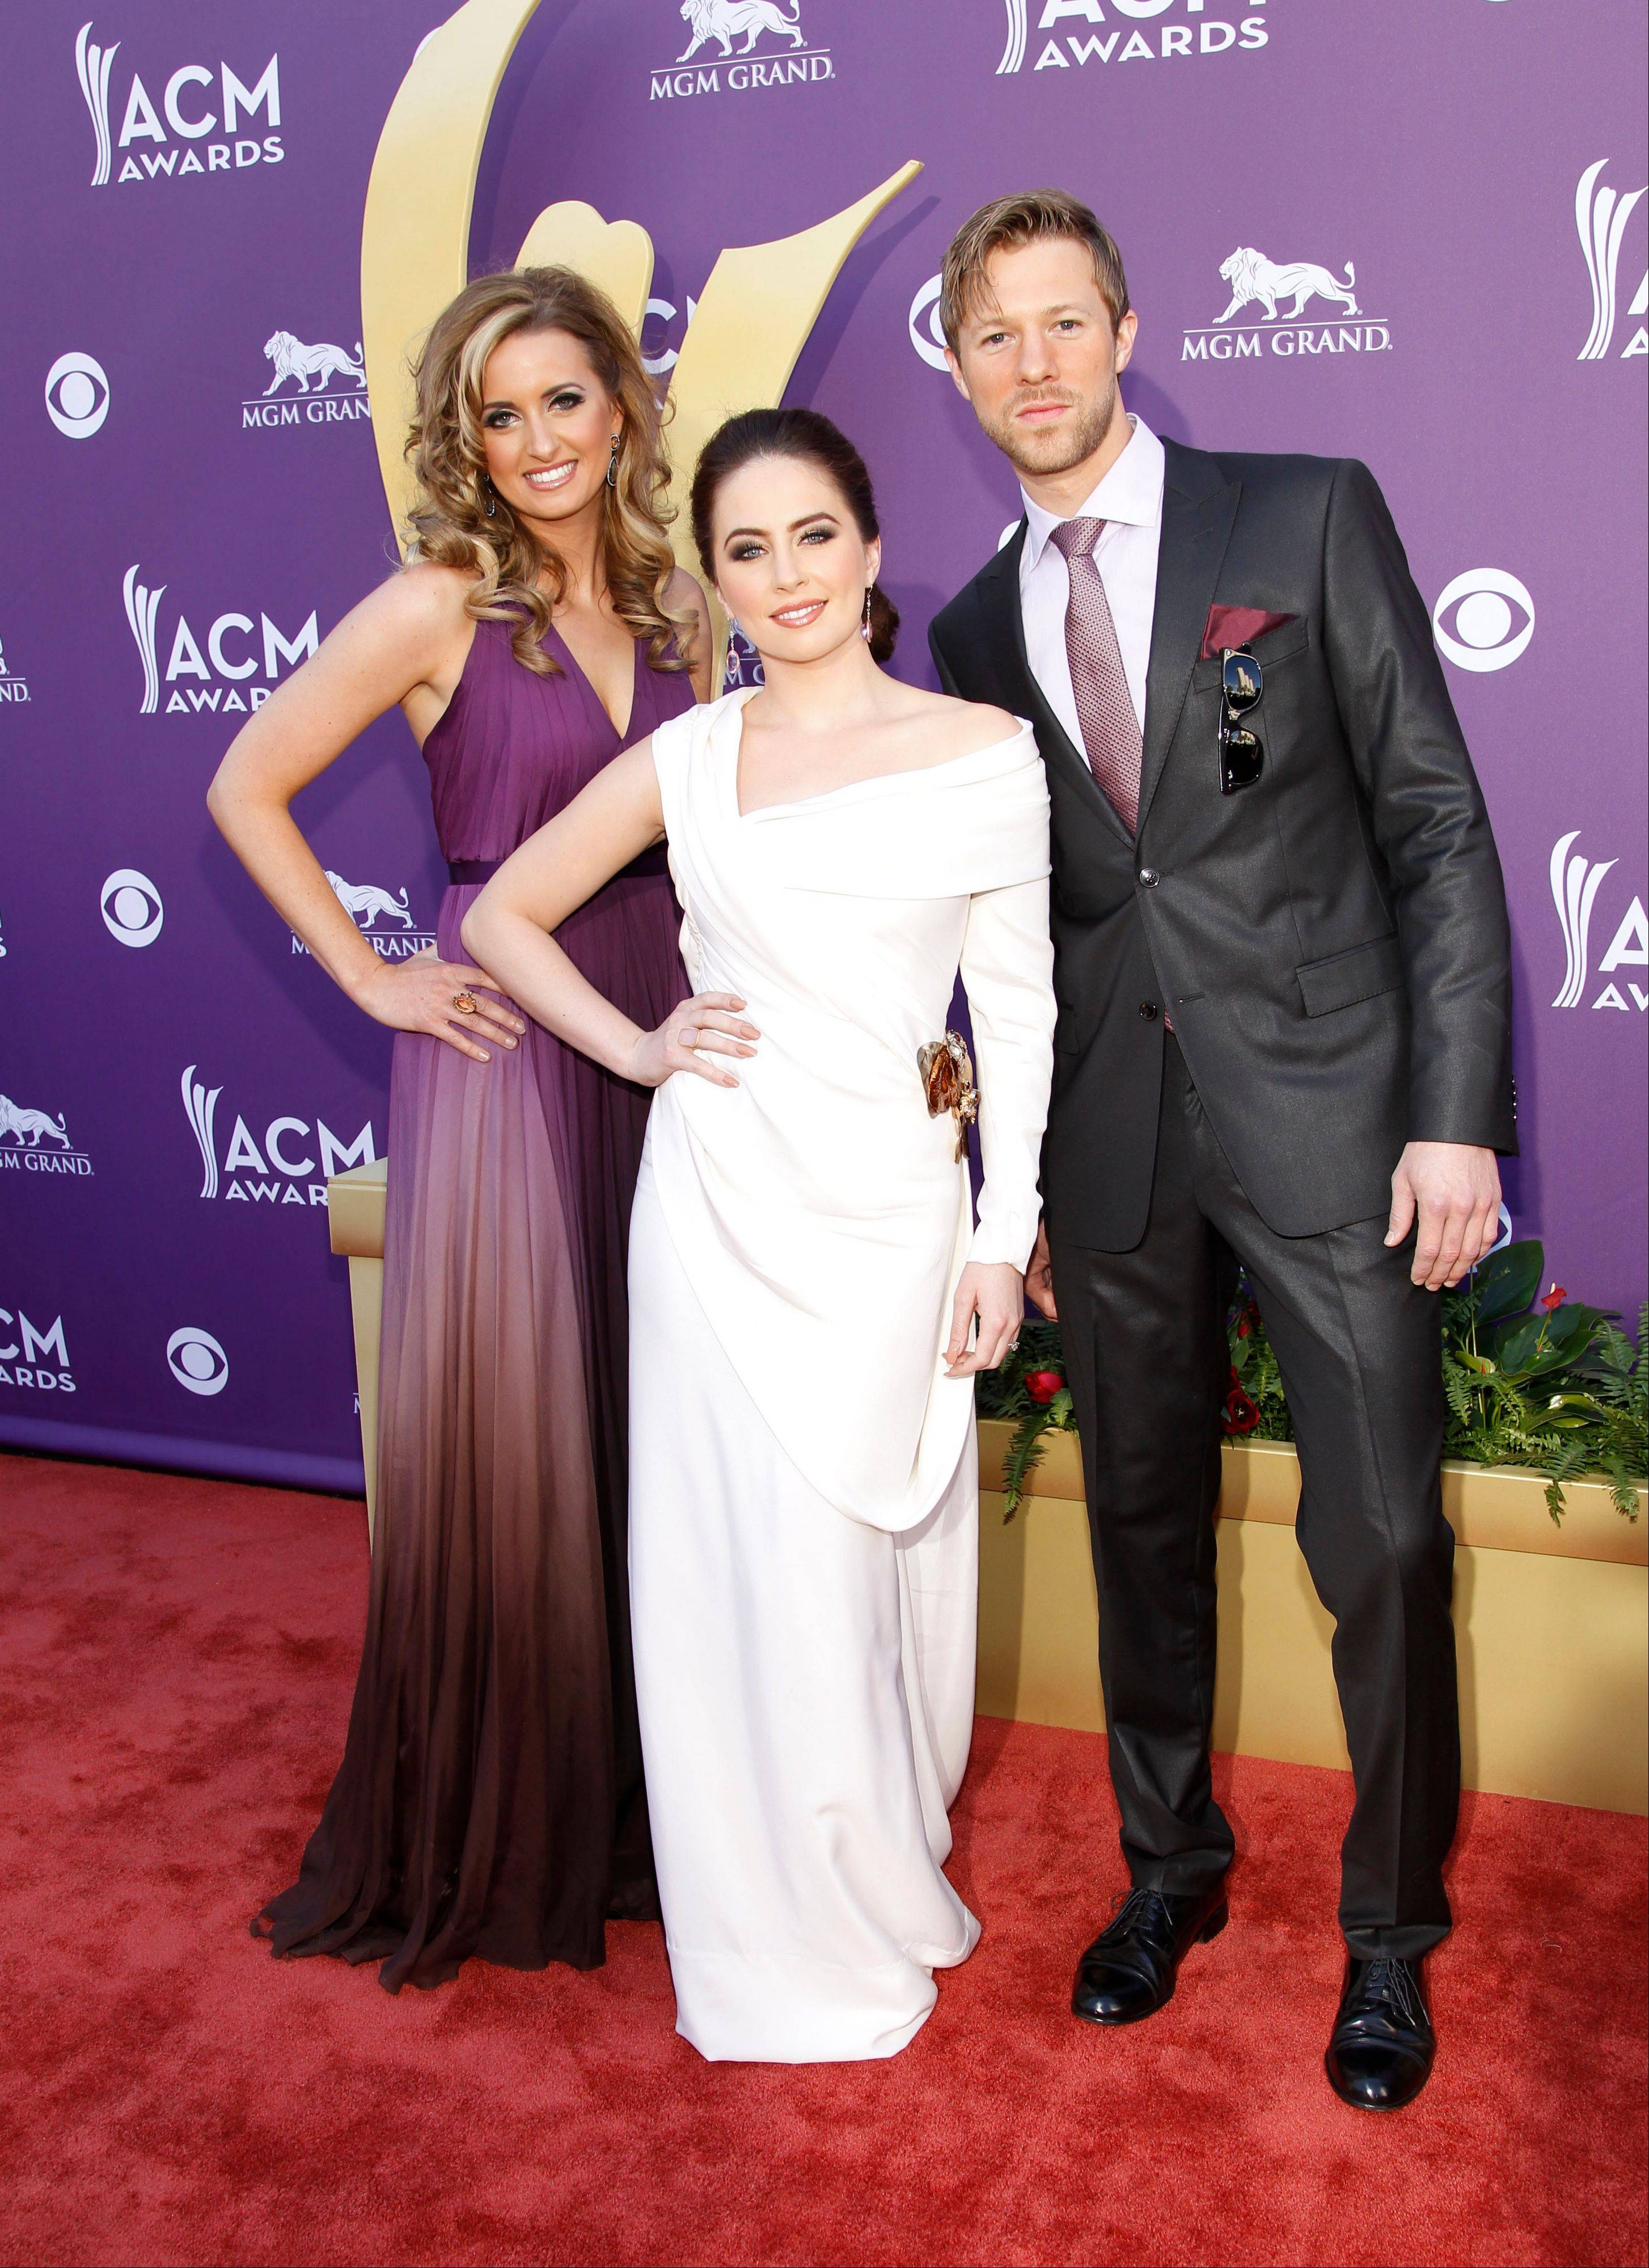 From left, Cherrill Green, Hannah Blaylock and Dean Berner, of musical group Edens Edge arrive at the 47th Annual Academy of Country Music Awards.